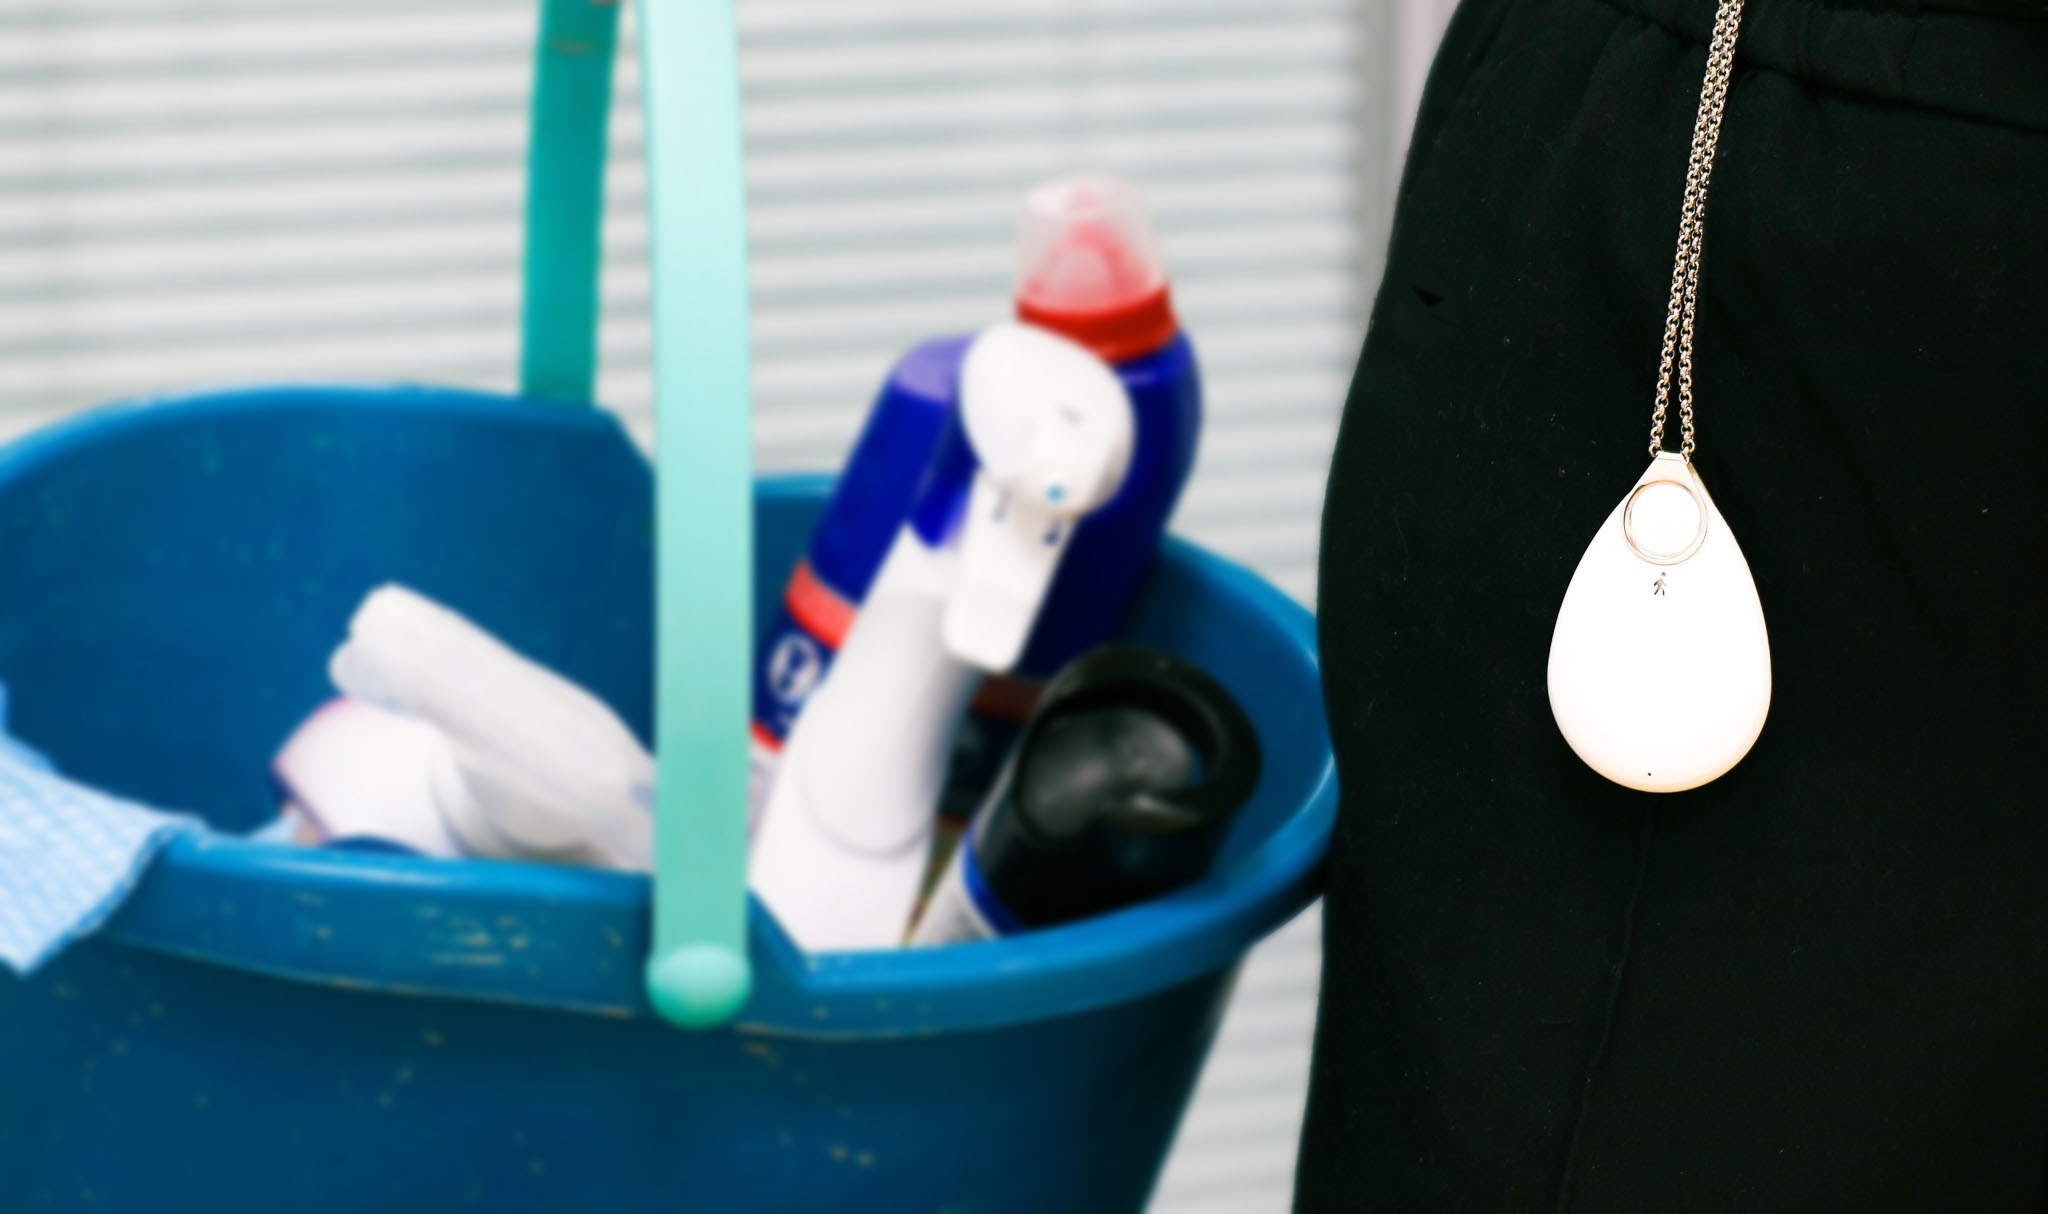 Cleaner wearing Lone Alarm